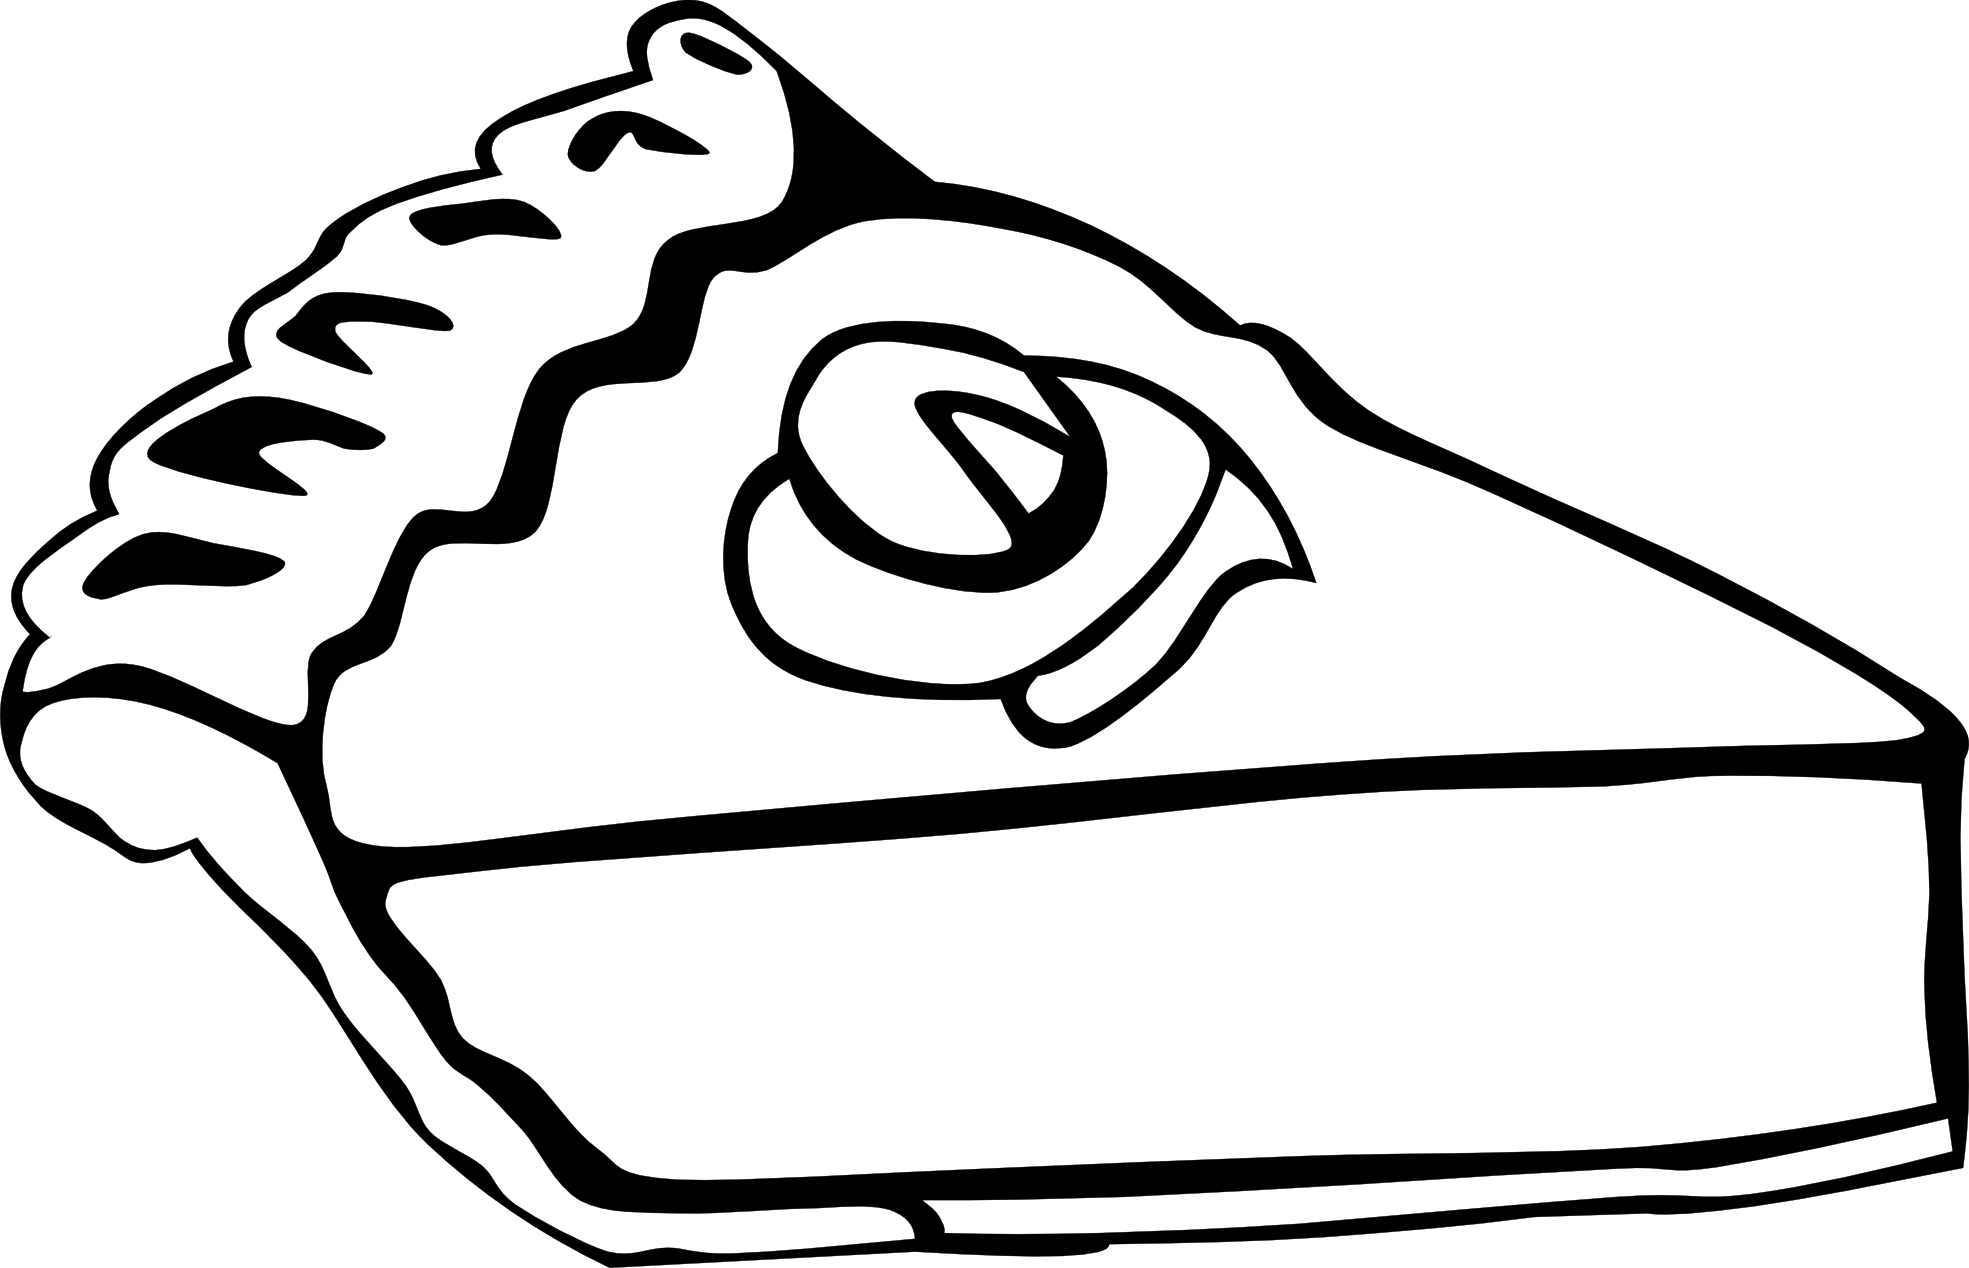 1969x1268 Meal Clipart Black And White